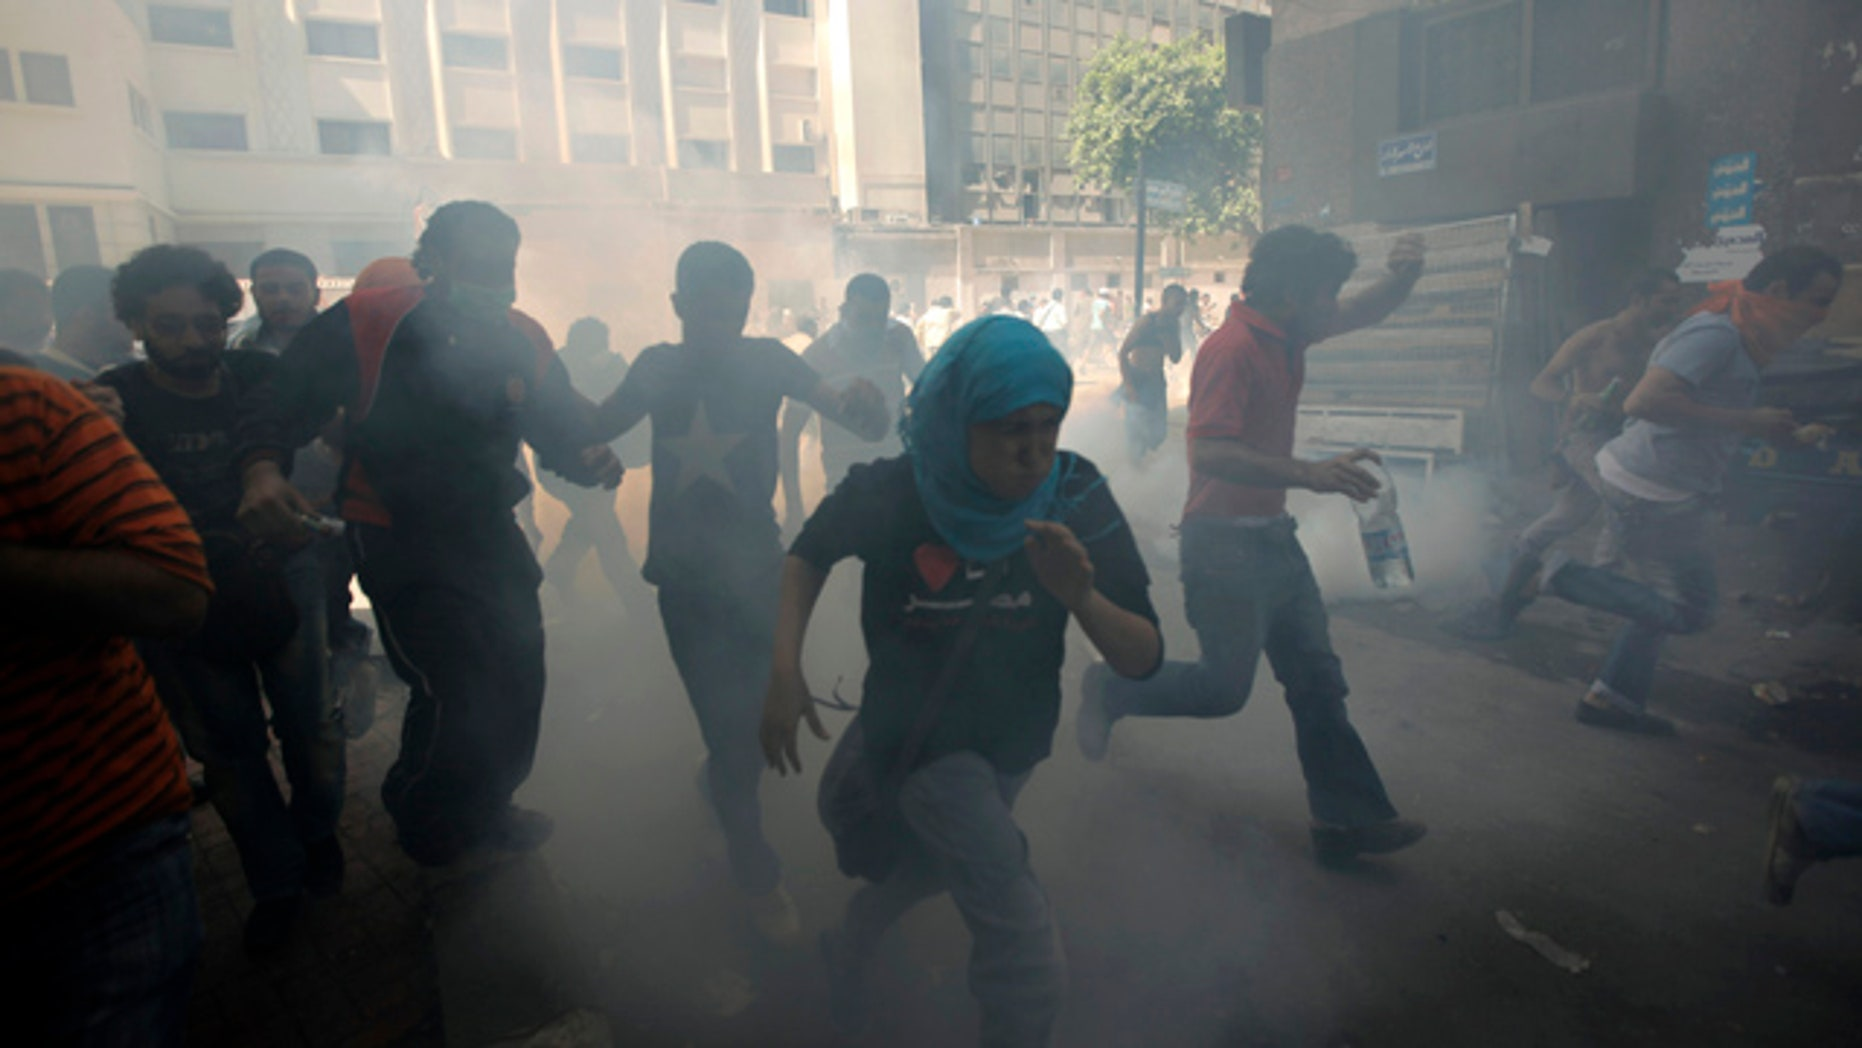 June 29: Egyptian protesters run to avoid tear gas during clashes with security forces at Tahrir Square in Cairo, Egypt.